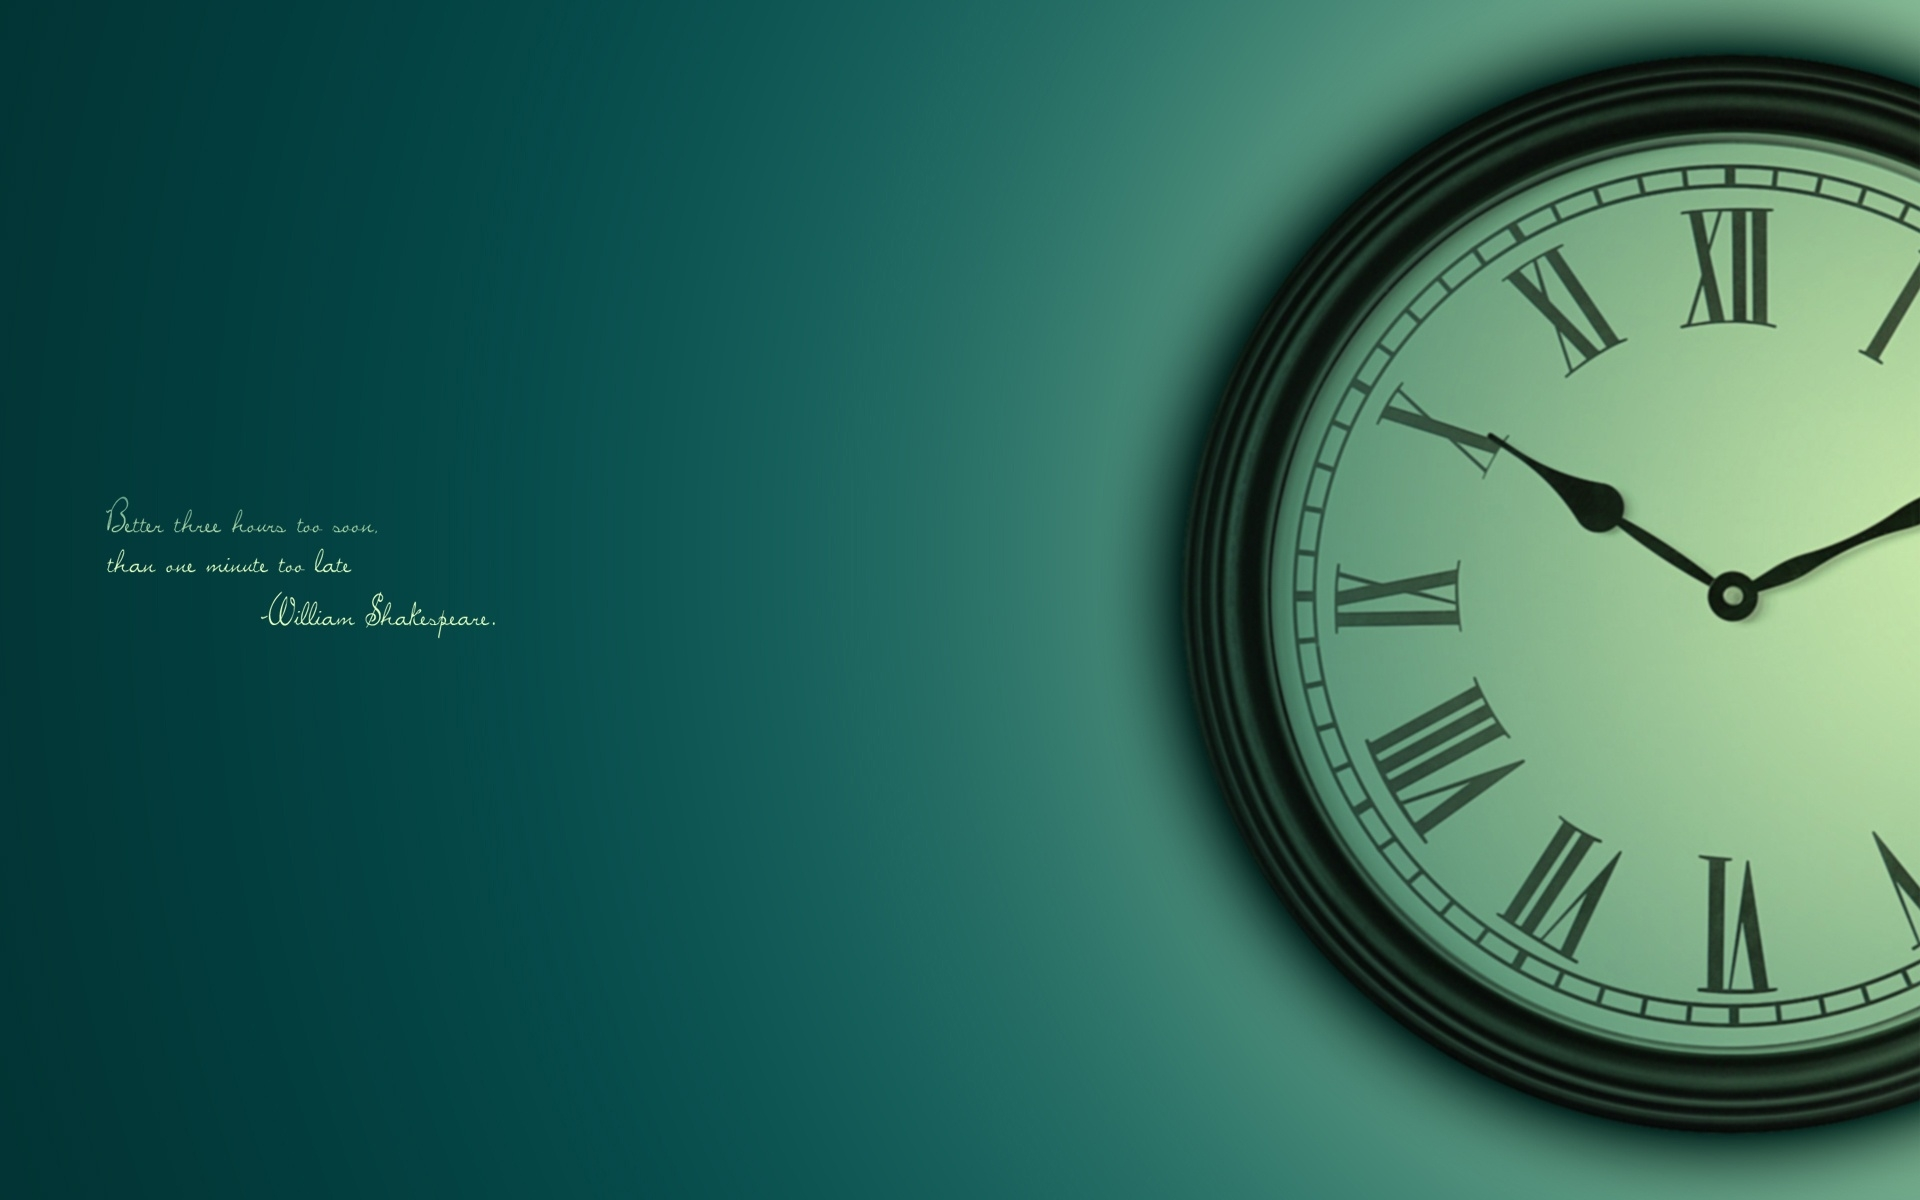 Wallpaper Of Time